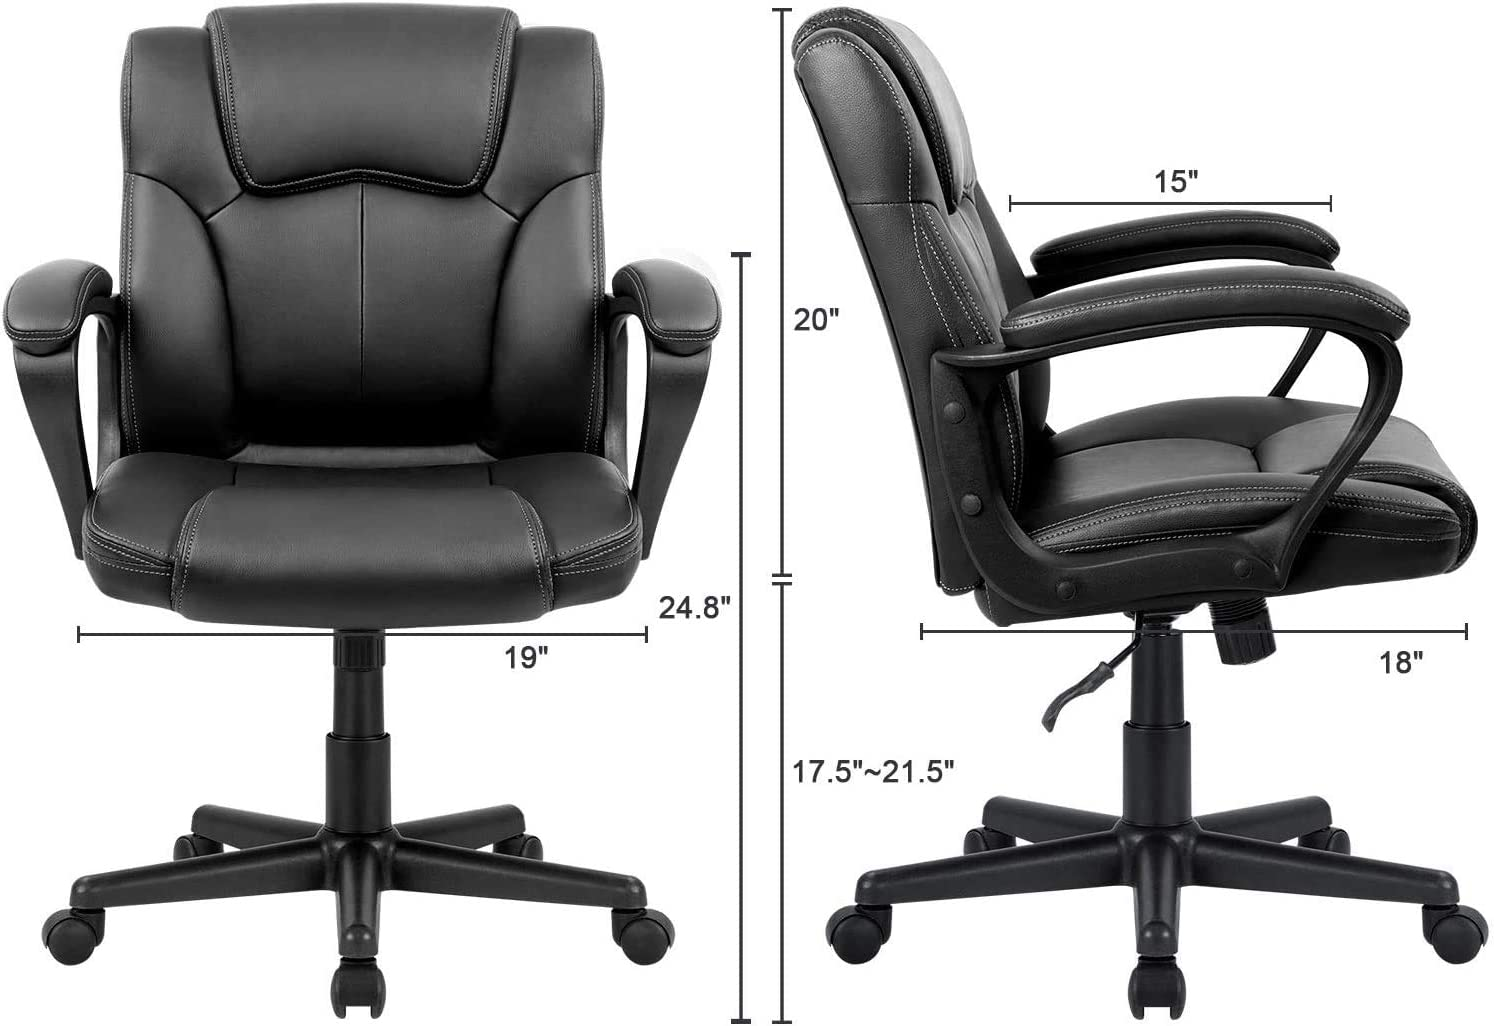 GO DEEP 365 Ergonomic PU Desk Task Executive Chair Big and Tall Office Chair